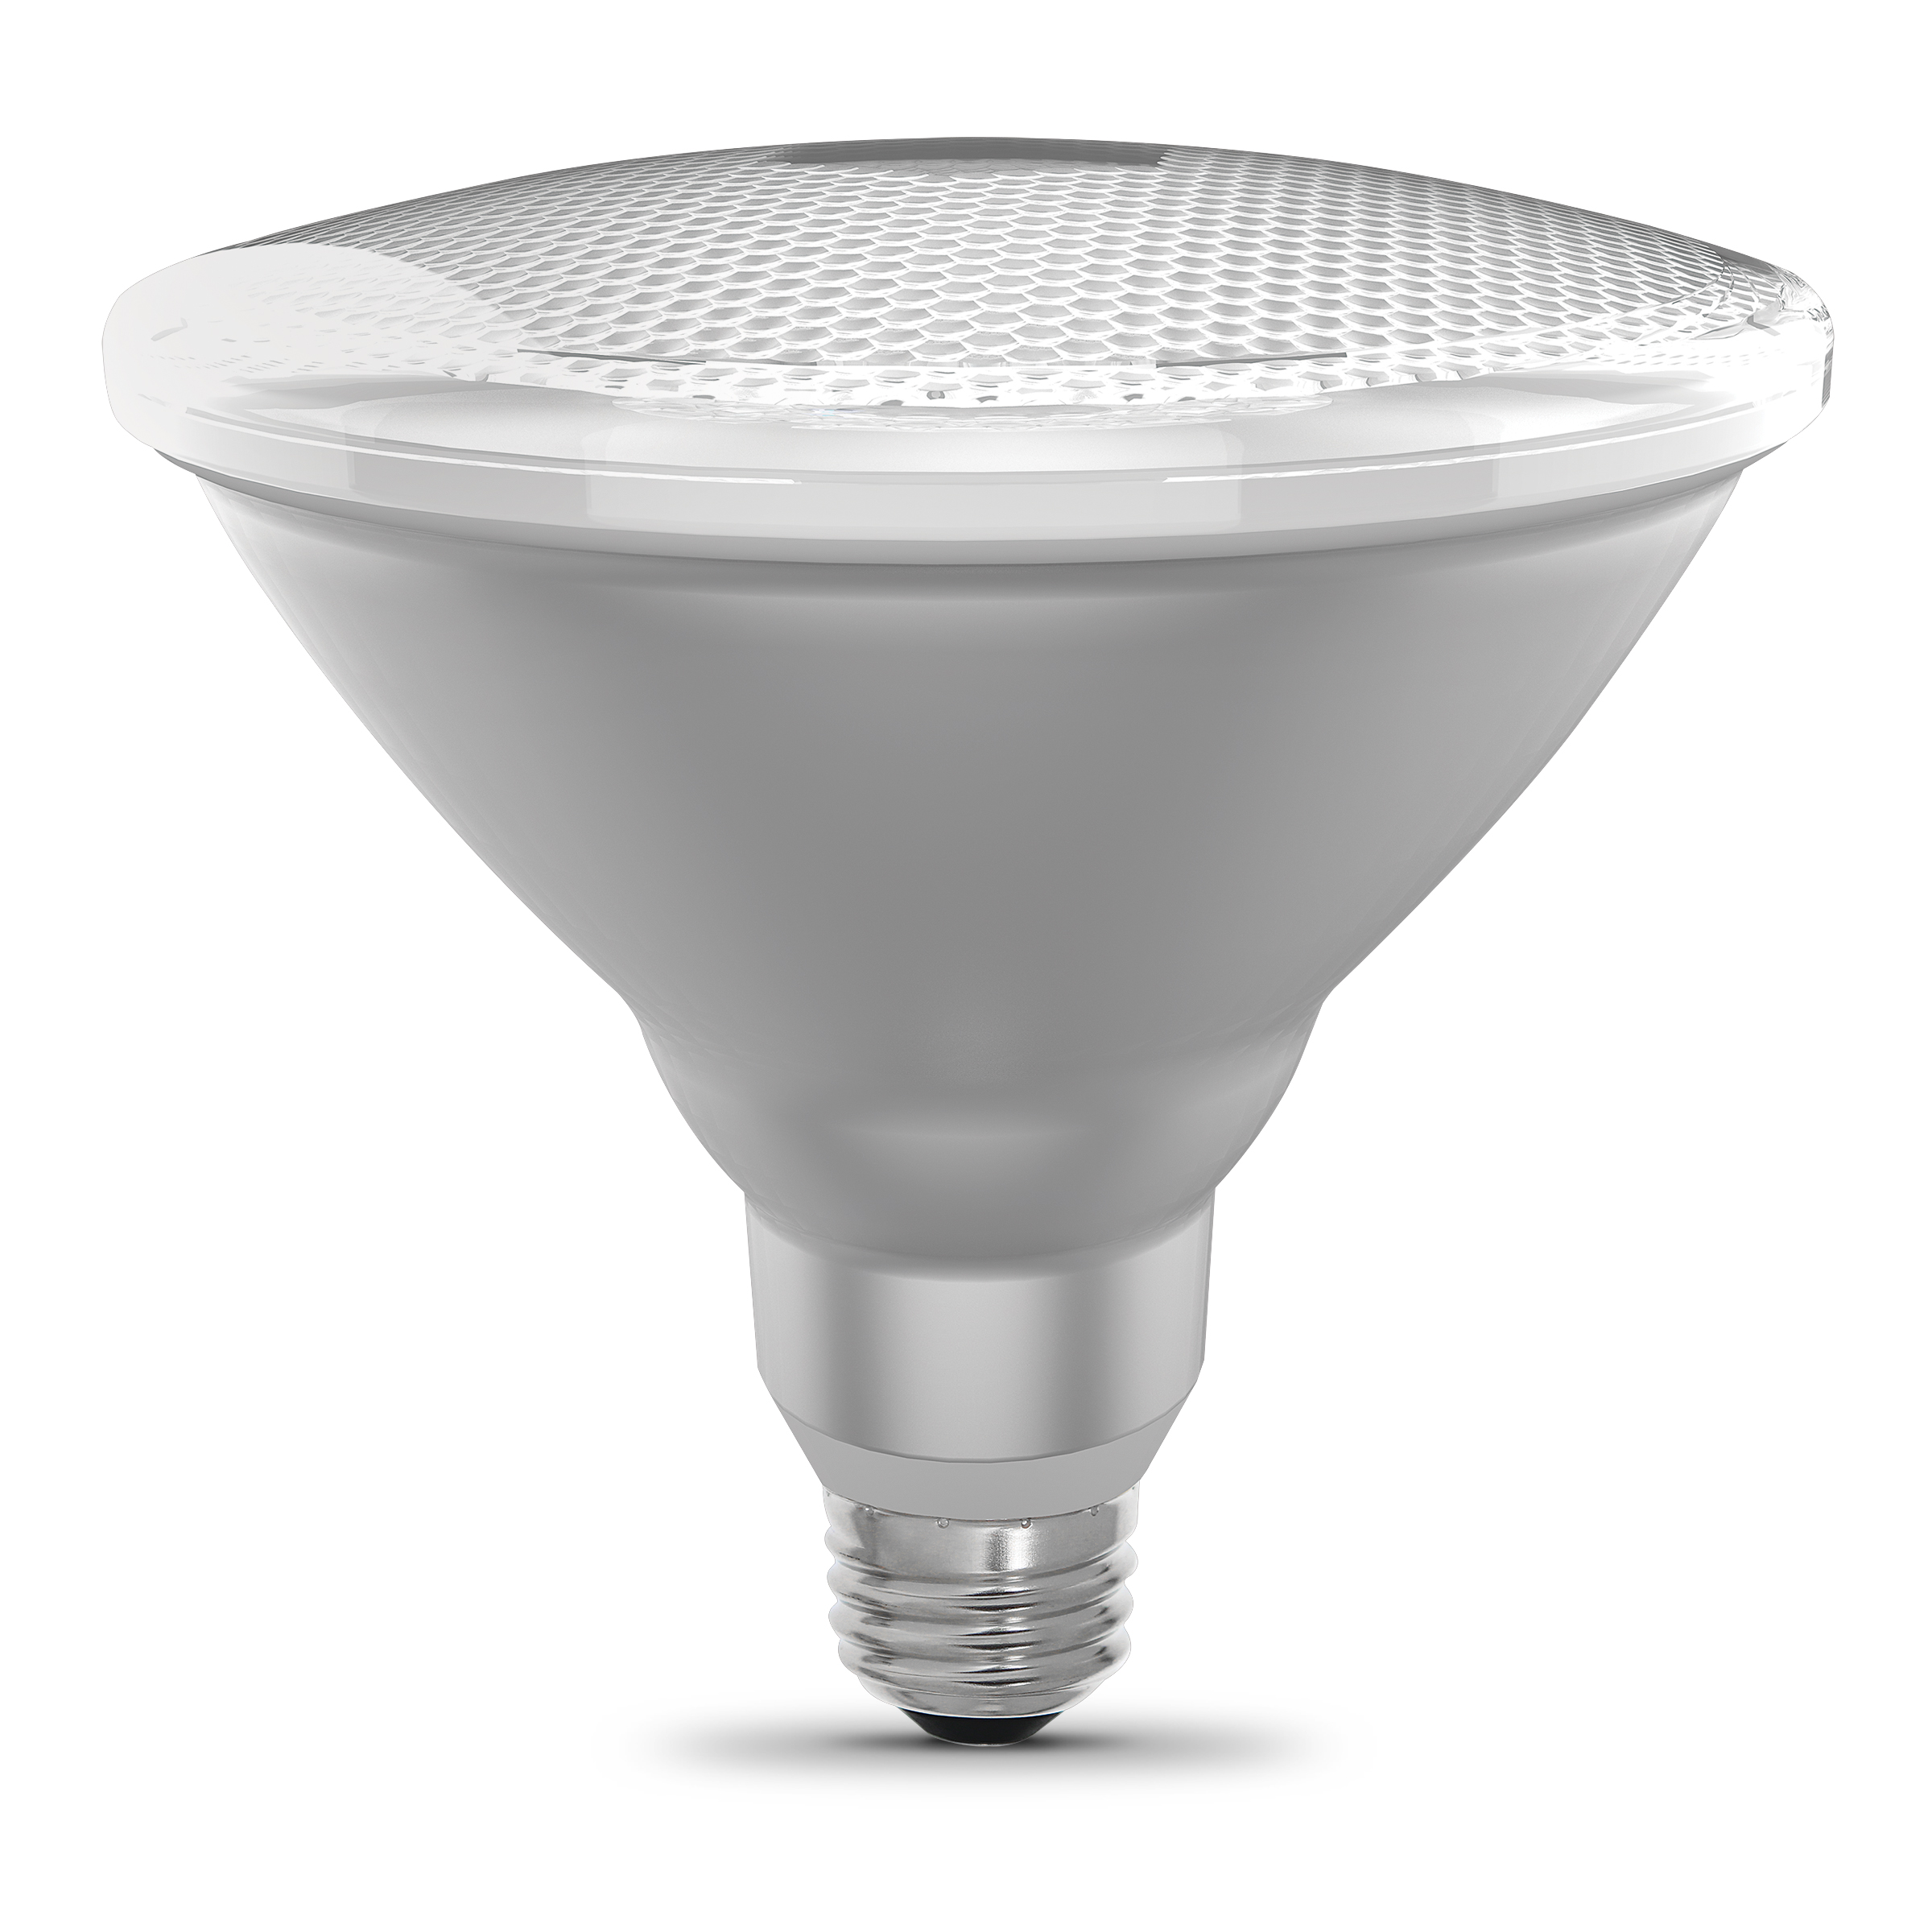 150-Watt Equivalent Bright White PAR38 Dimmable Reflector LED